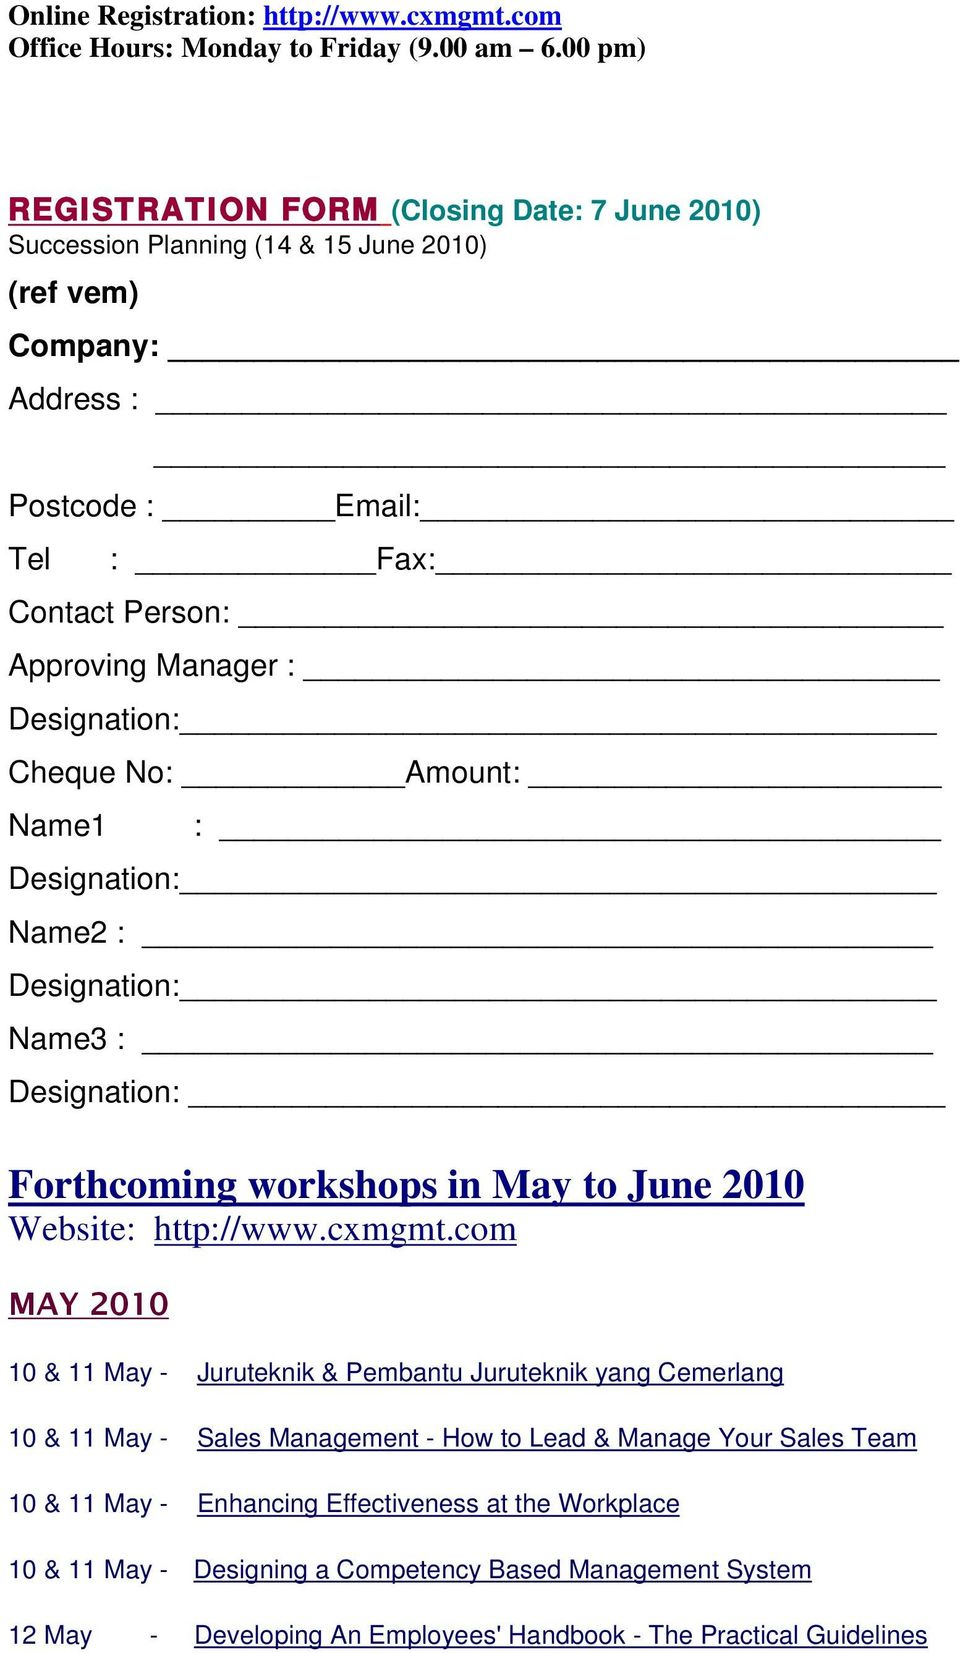 Designation: Cheque No: Amount: Name1 : Designation: Name2 : Designation: Name3 : Designation: Forthcoming workshops in May to June 2010 Website: http://www.cxmgmt.